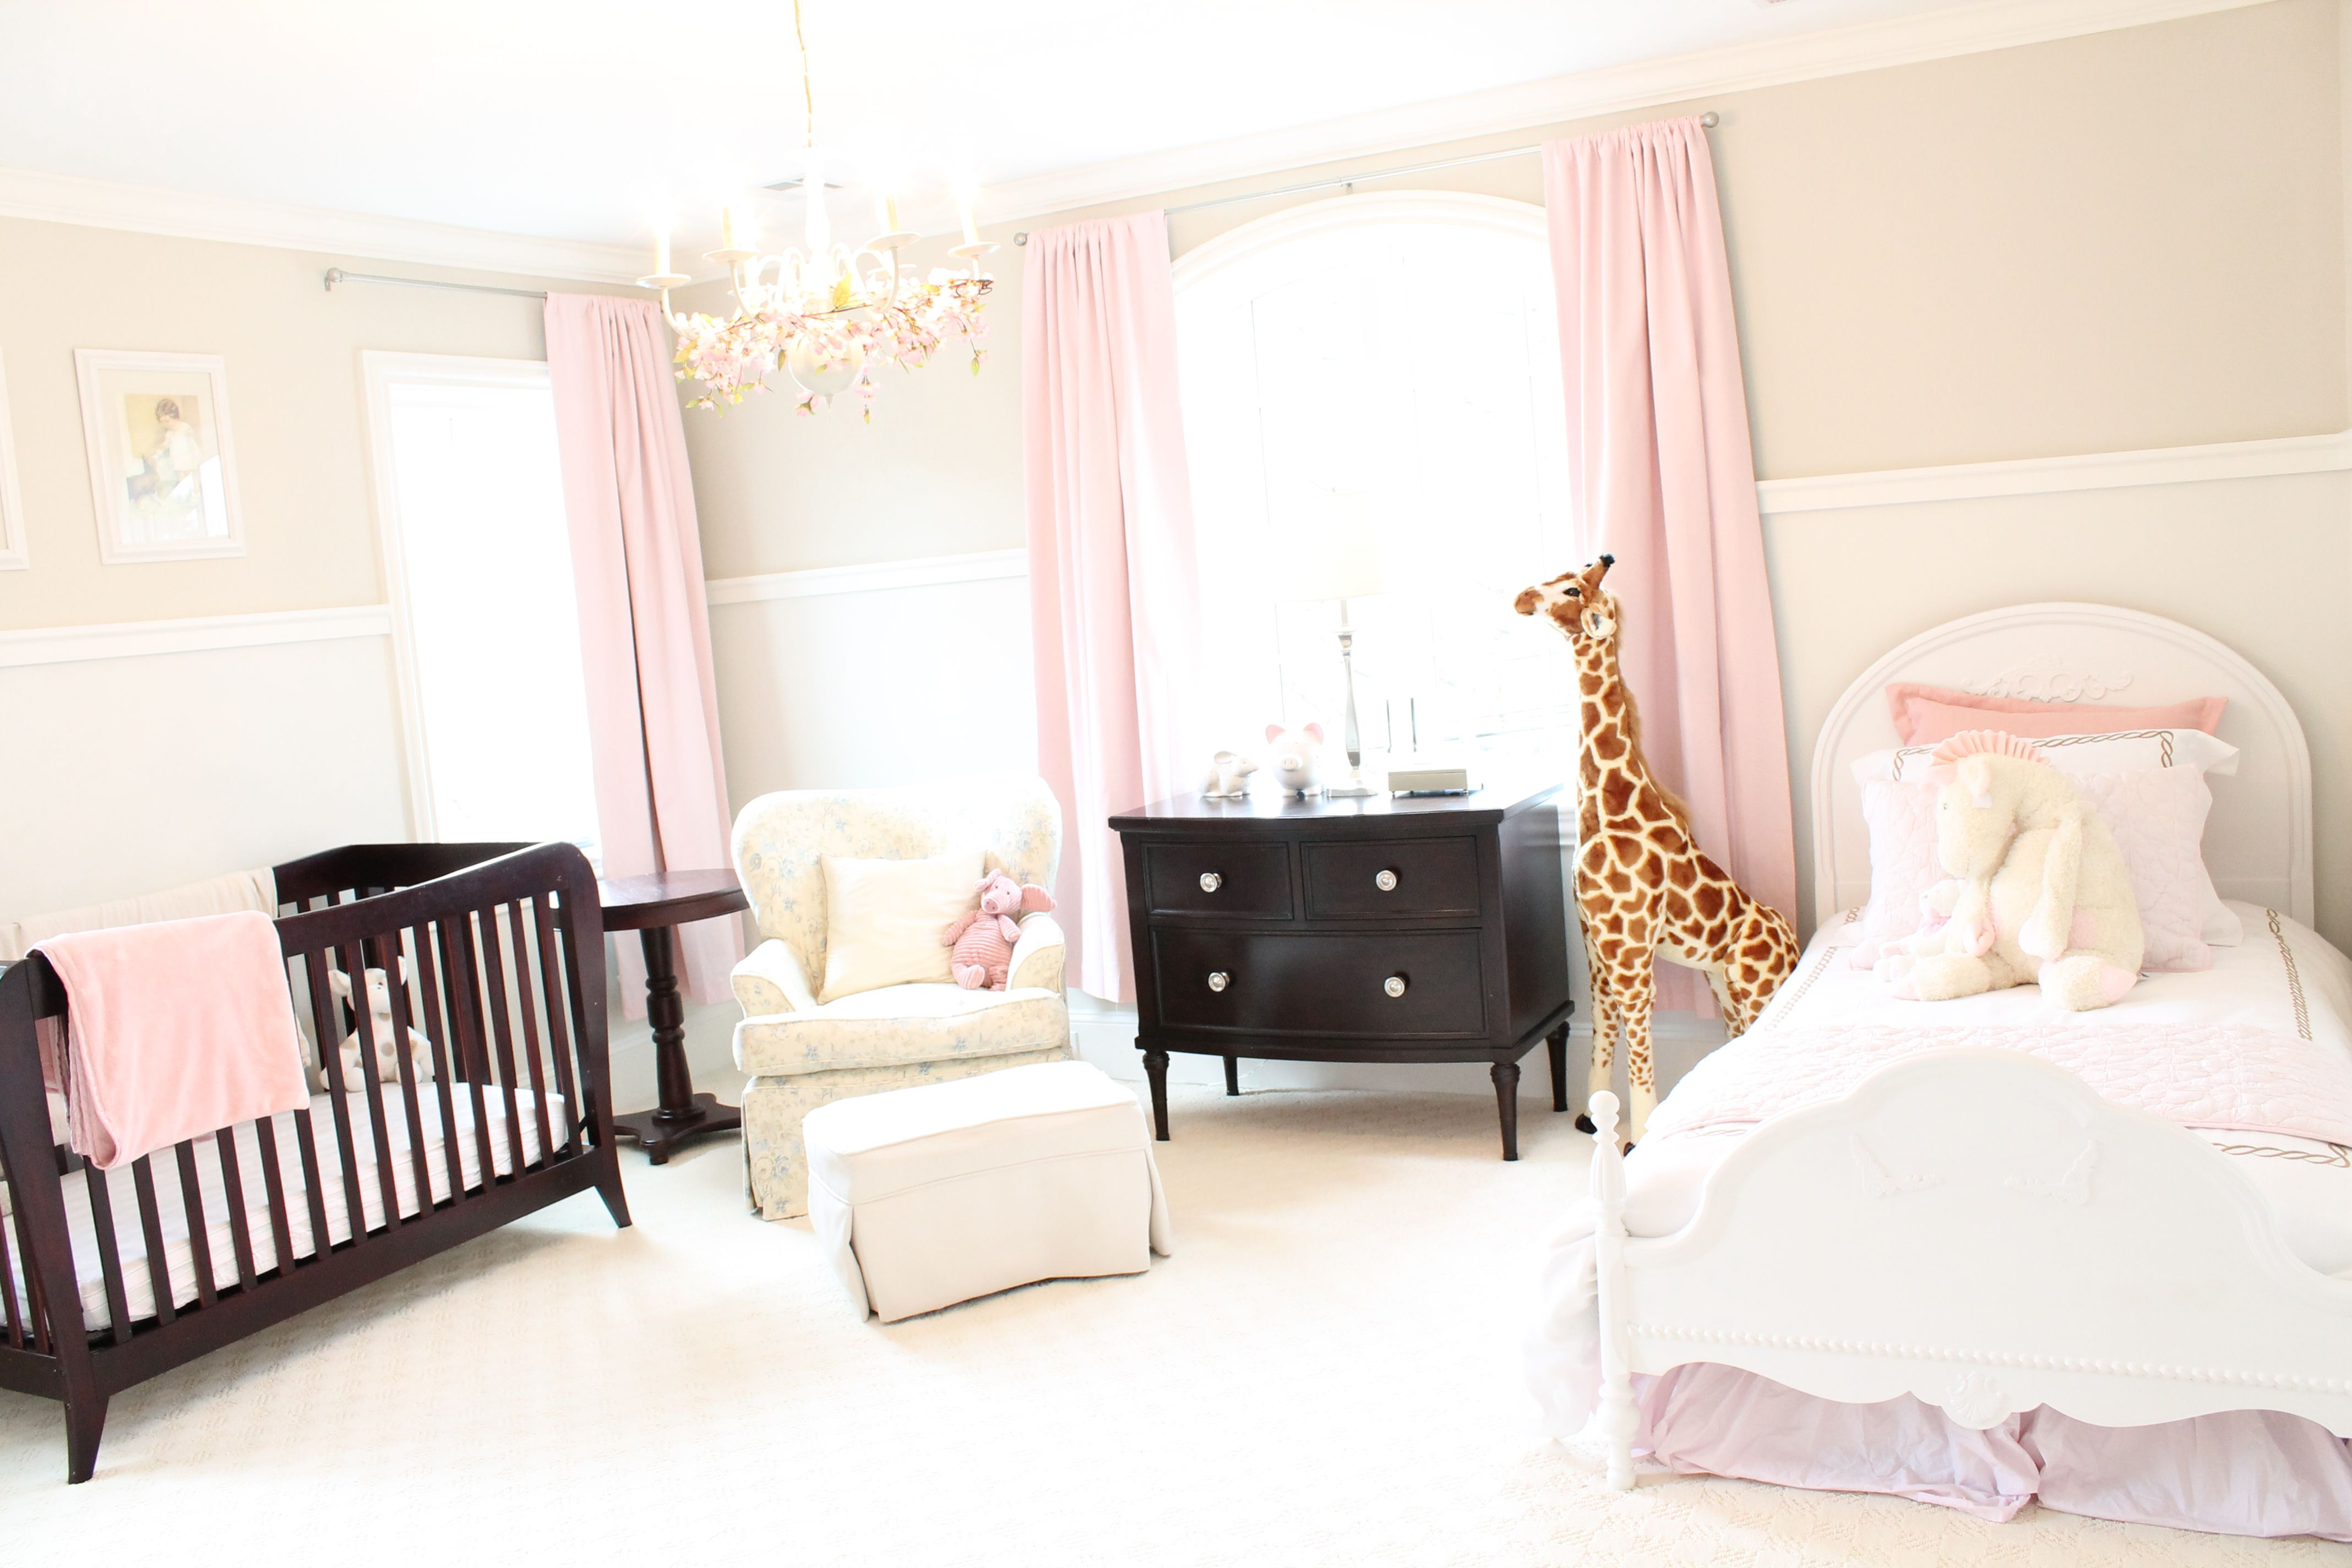 An elegant pink nursery fit for a little princess . The